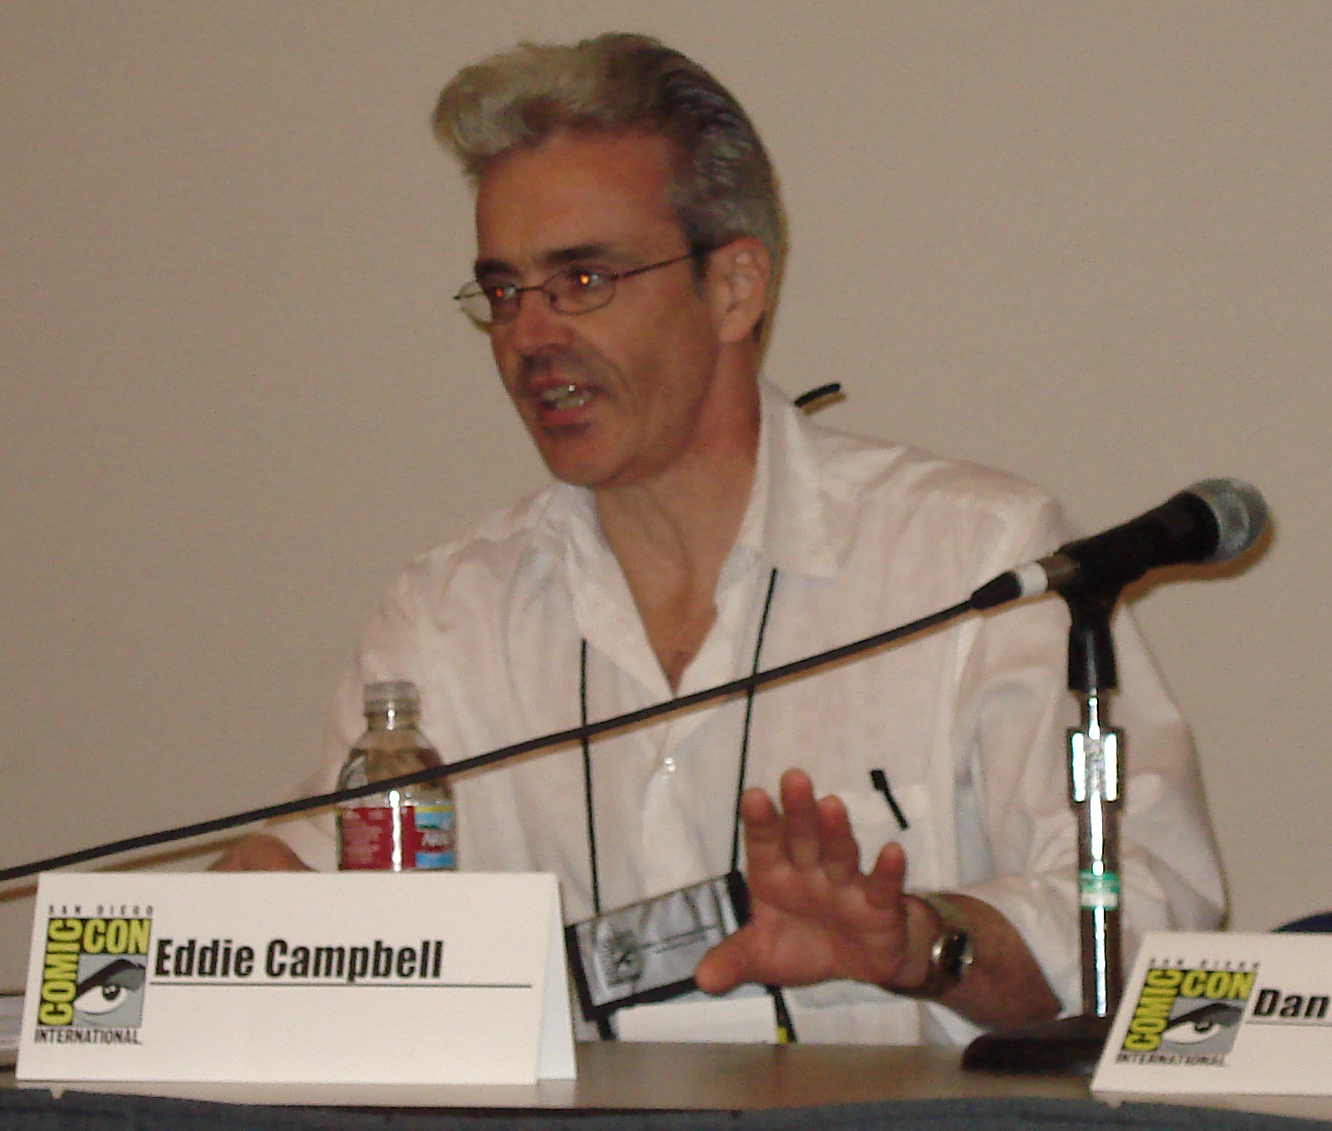 Eddie Campbell at the 2008 San Diego Comicon